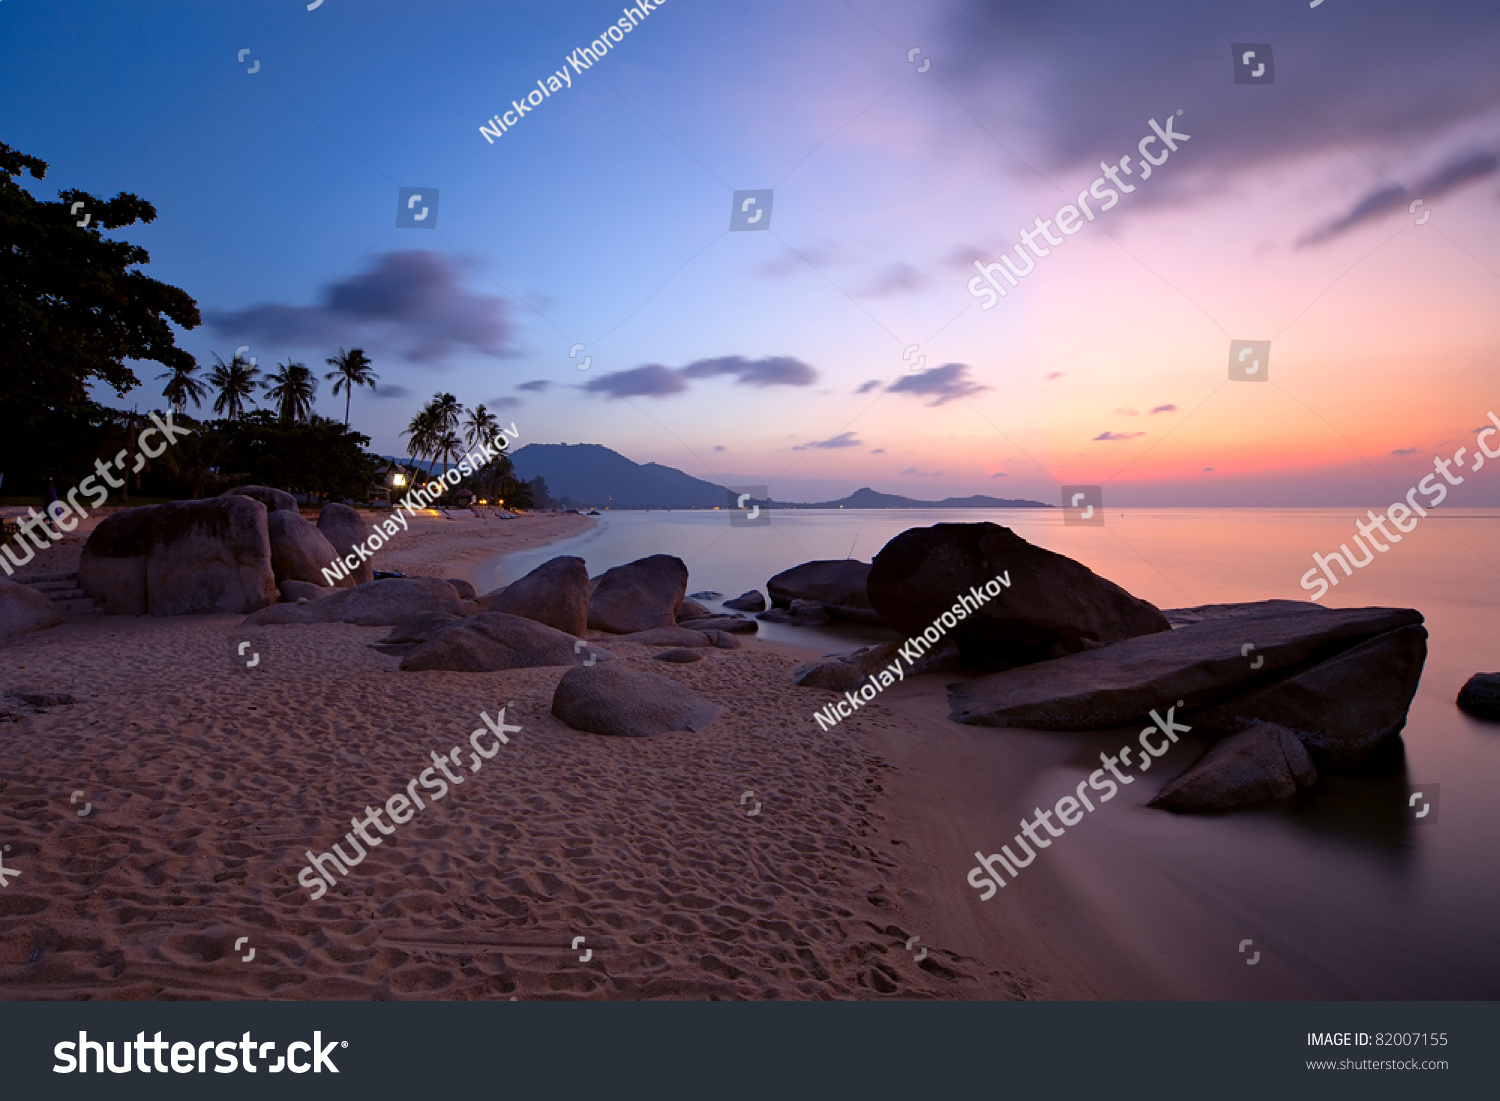 Sunrise At Lamai Beach, Koh Samui Island, Thailand Stock ...